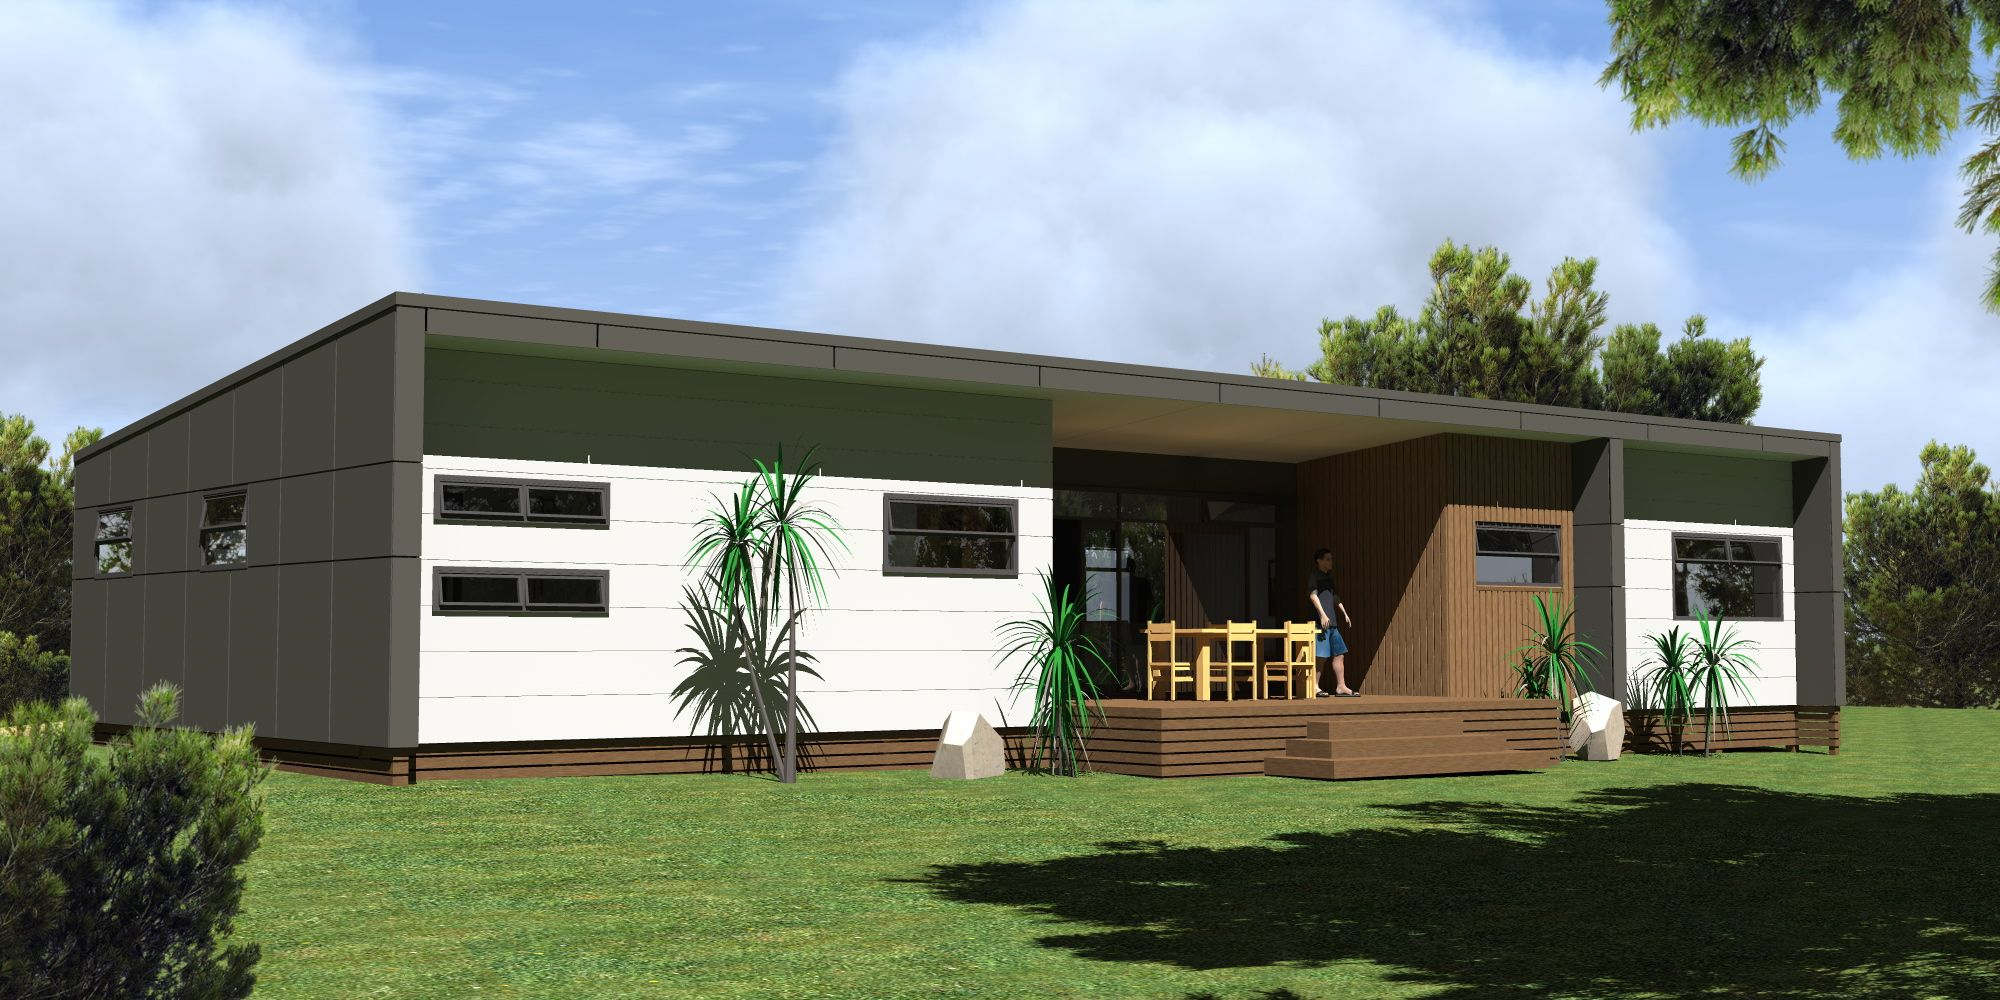 Sneak Peak At Stria Cladding And Timber Home Being